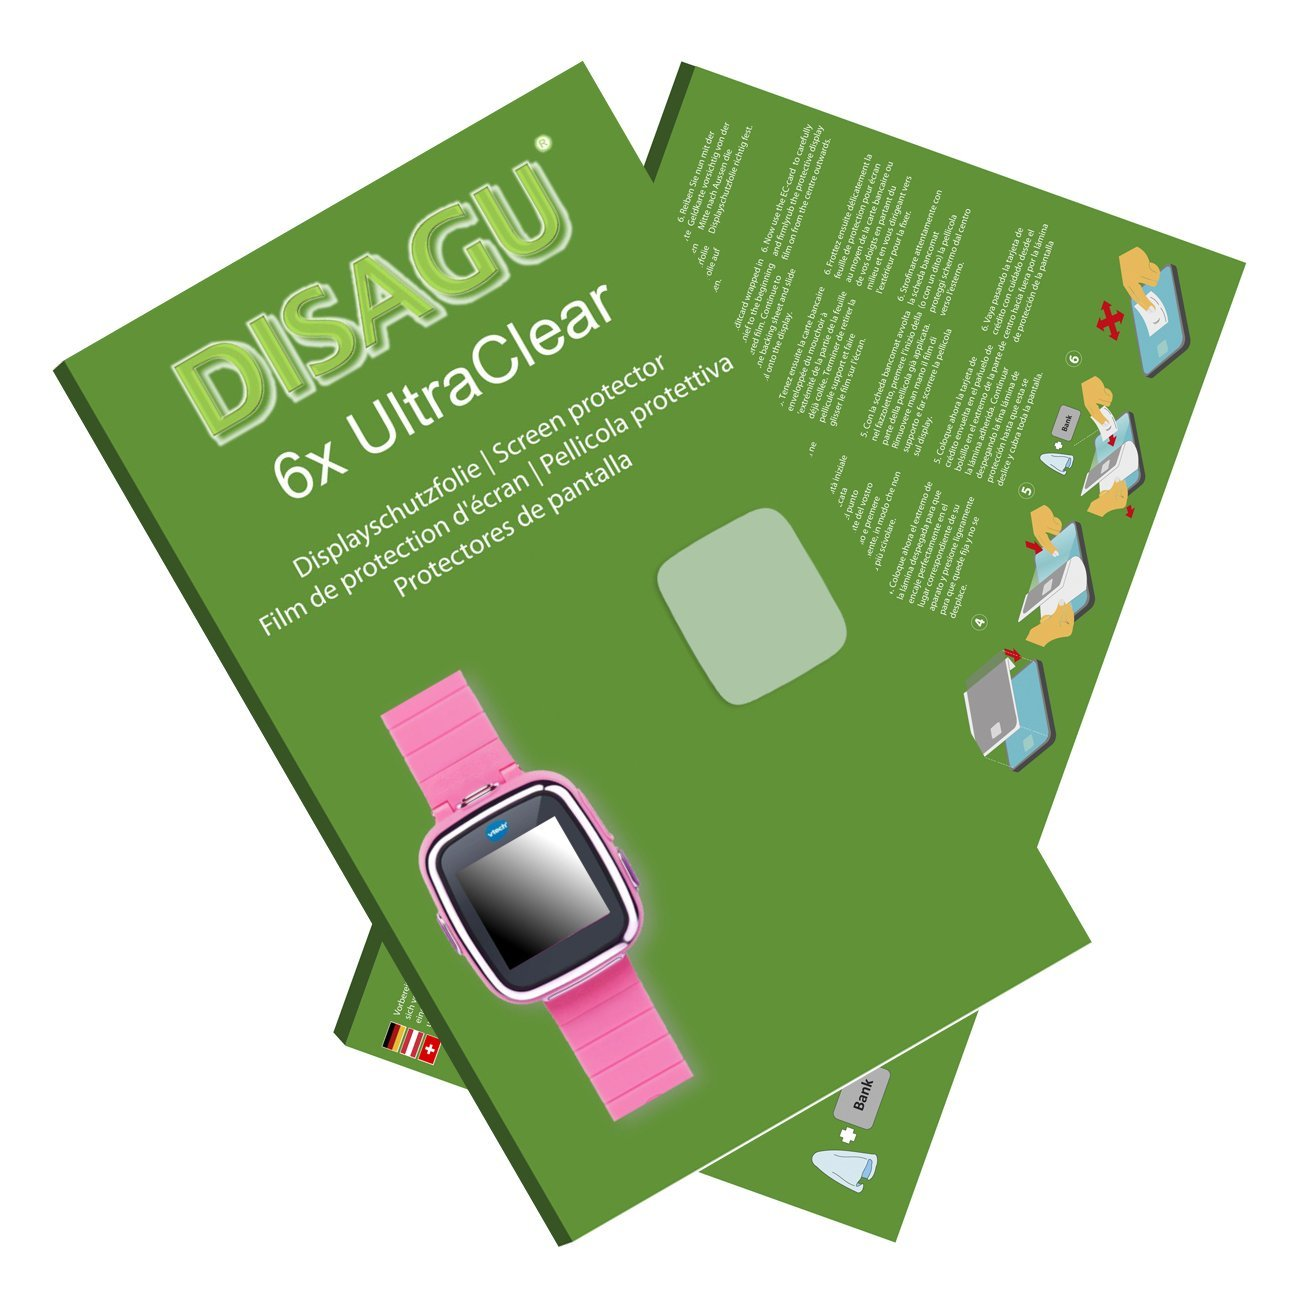 DISAGU 6x Ultra Clear Screen Protector for Vtech Kidizoom Smart Watch 2